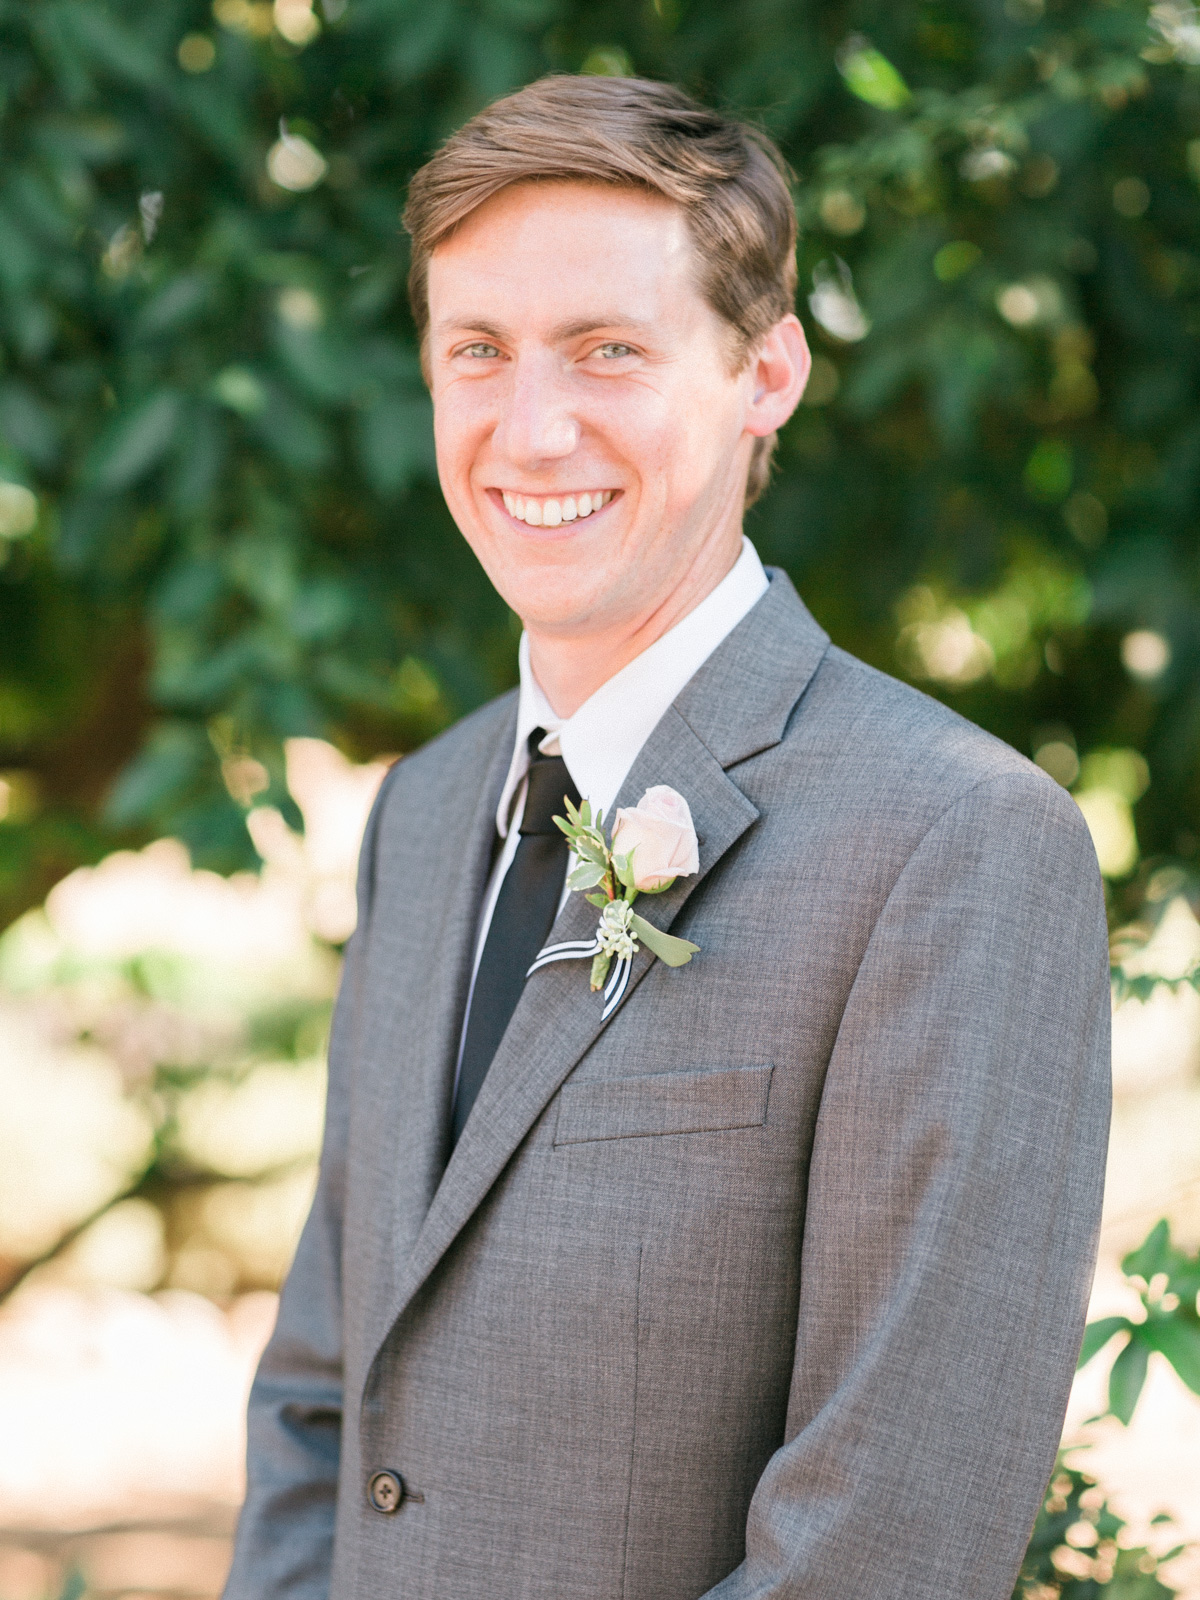 Handsome groom smiling at camera with blush boutonniere